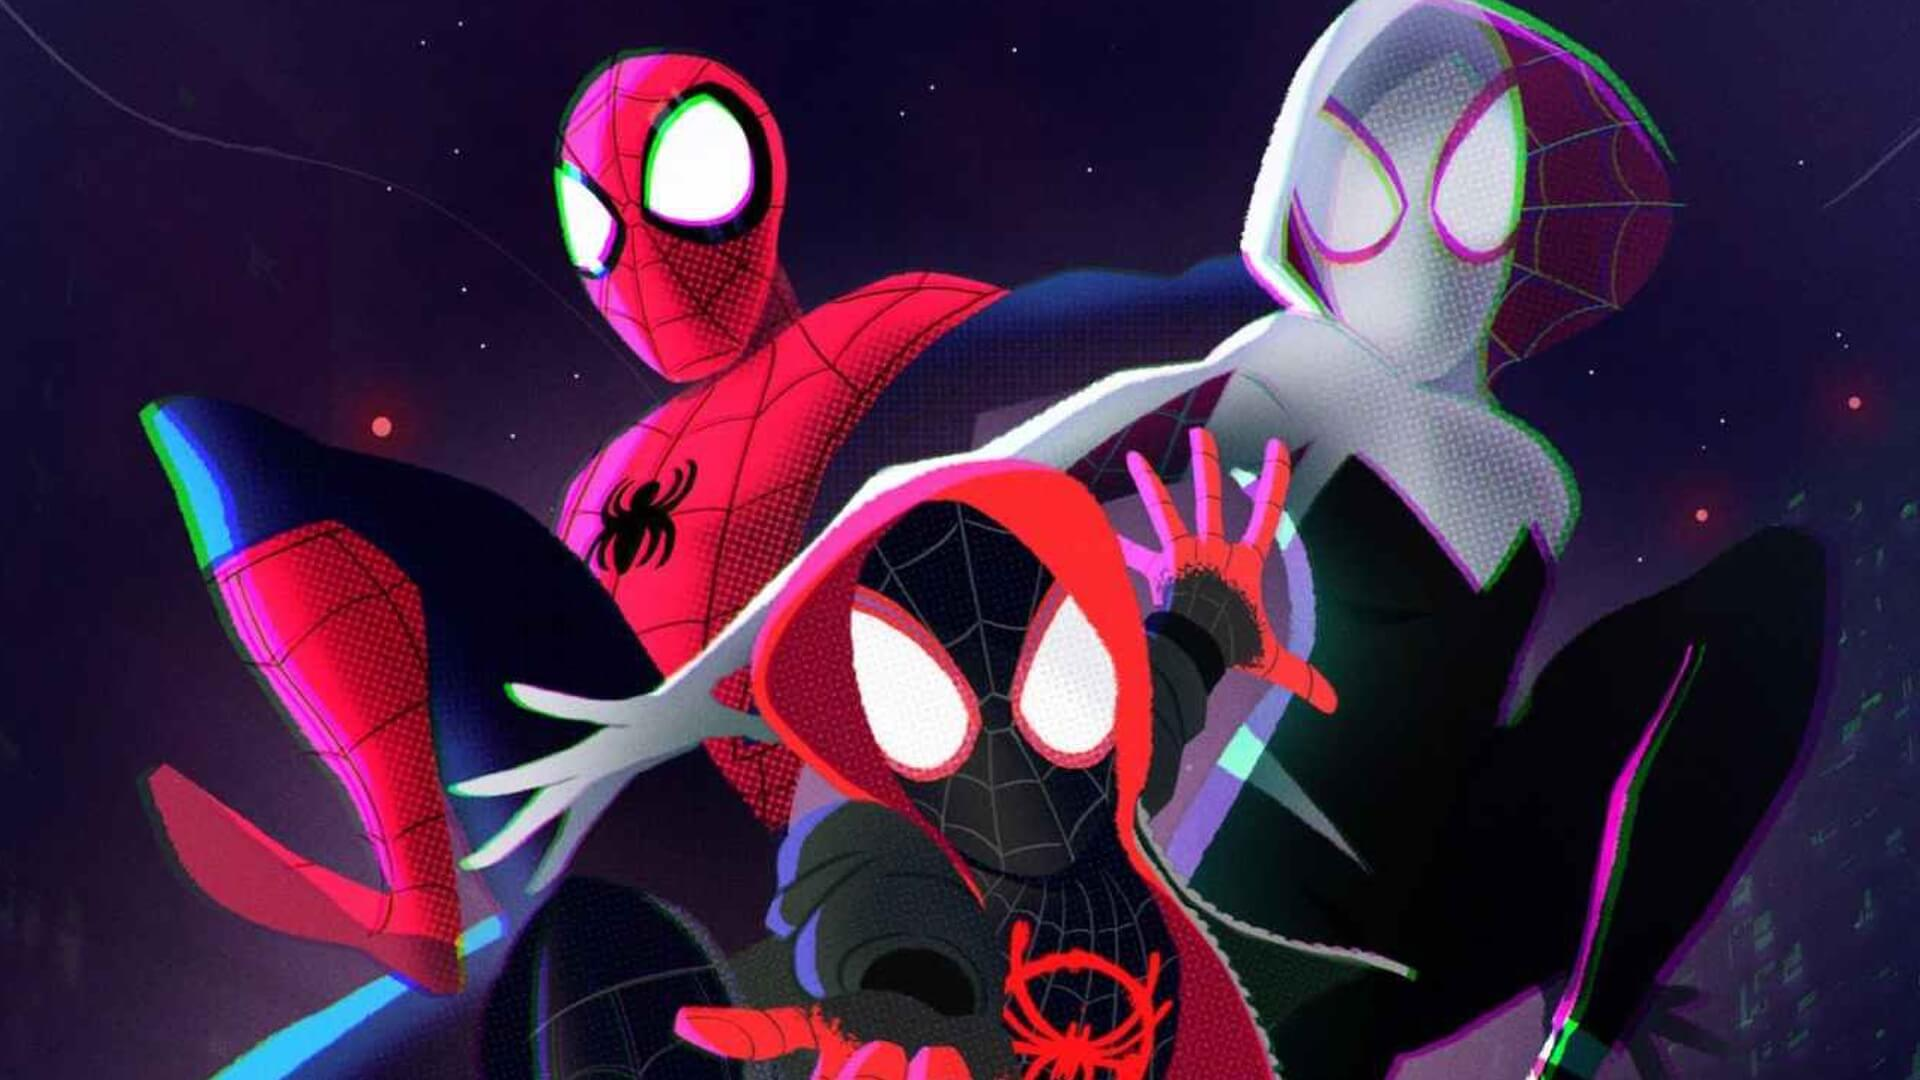 this-japanese-trailer-for-spider-man-into-the-spider-verse-brings-anime-style-awesomeness-social